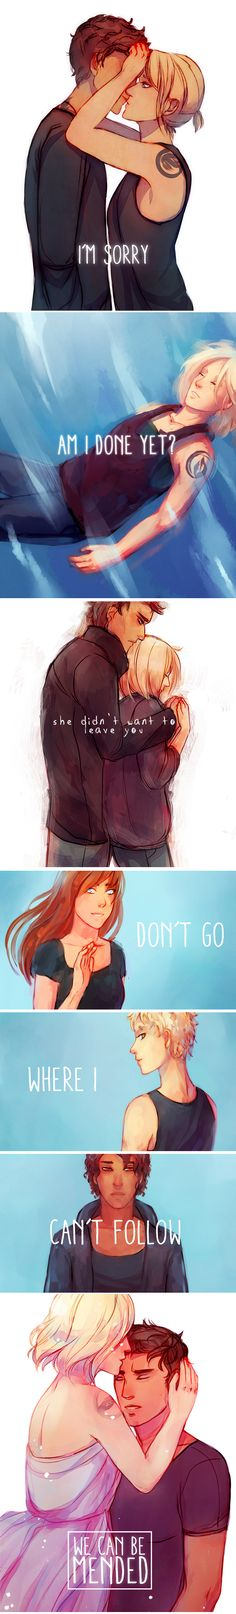 Allegiant spoilers by walkingnorth.deviantart.com on @deviantART